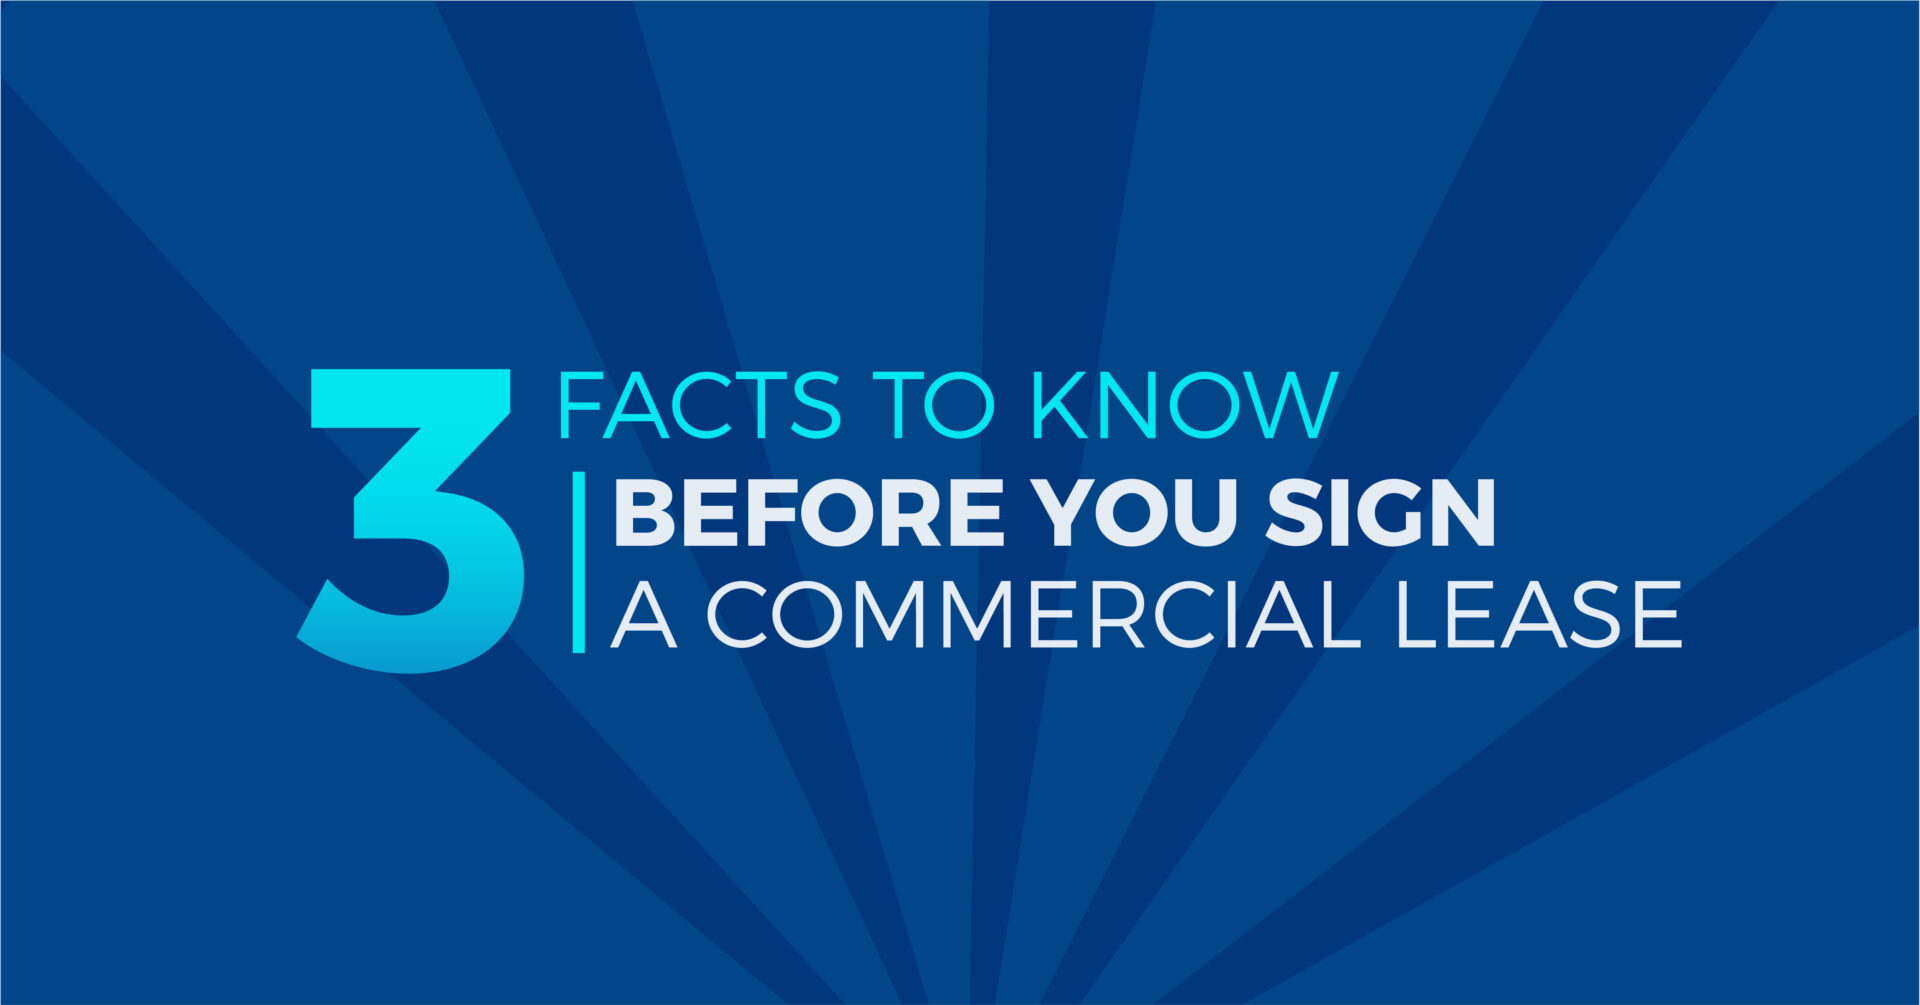 3 Facts To Know BEFORE You Sign A Commercial Lease